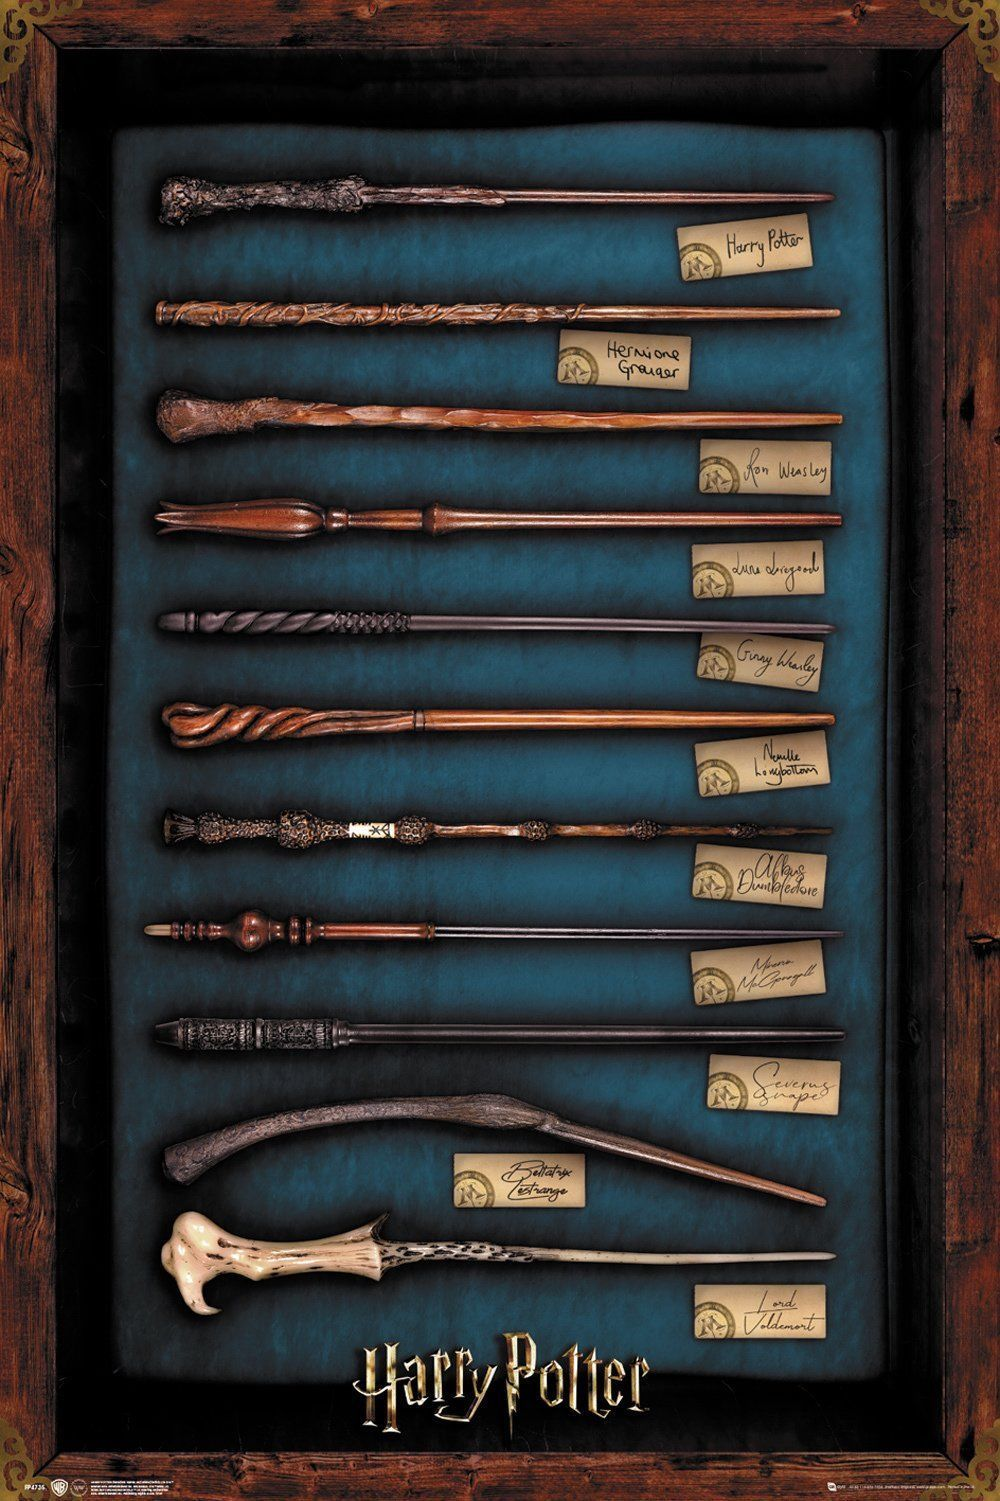 Harry Potter - Movie Poster / Print (The Wands Of Harry Potter) (24